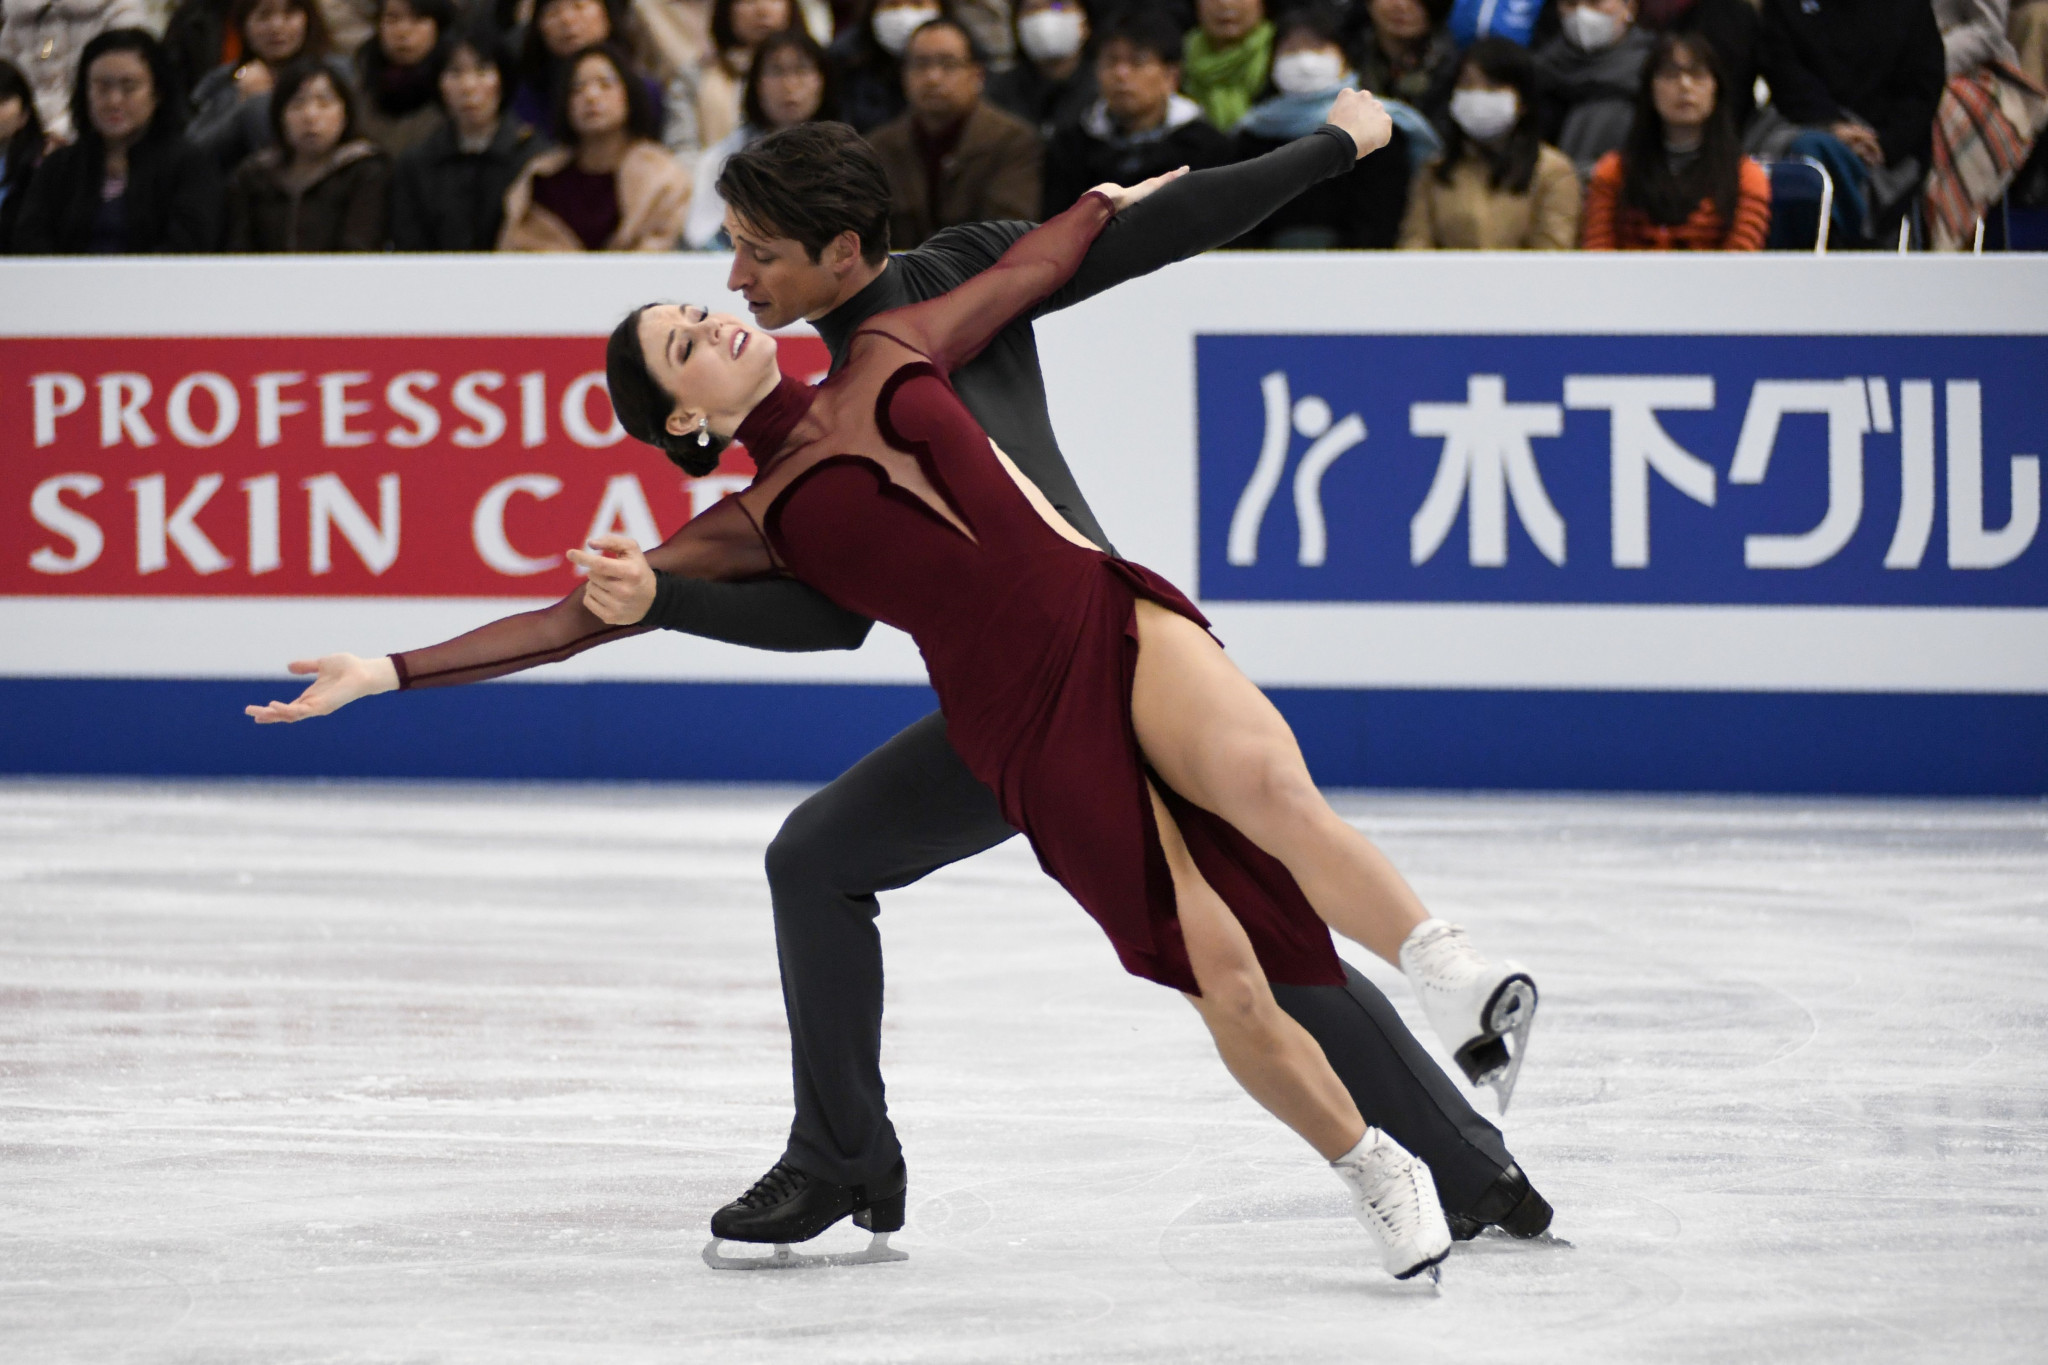 Tessa Virtue and Scott Moir, the ice dance gold medallists at the Vancouver 2010 Olympic Games, have been named on Canada's team for Pyeongchang 2018 ©Getty Images